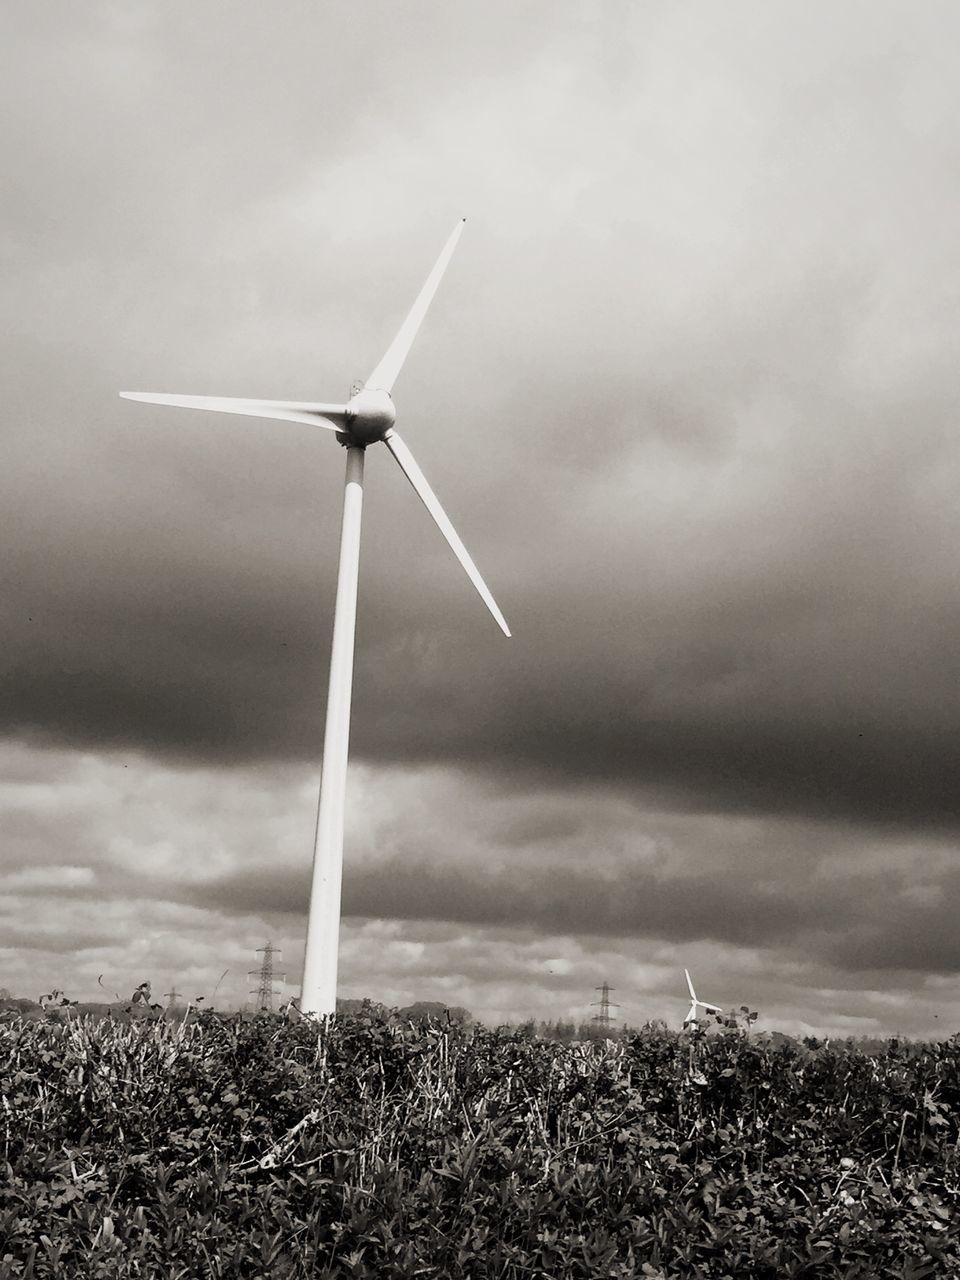 wind power, wind turbine, alternative energy, environmental conservation, renewable energy, fuel and power generation, windmill, industrial windmill, field, technology, sky, nature, rural scene, cloud - sky, outdoors, no people, day, traditional windmill, landscape, grass, agriculture, low angle view